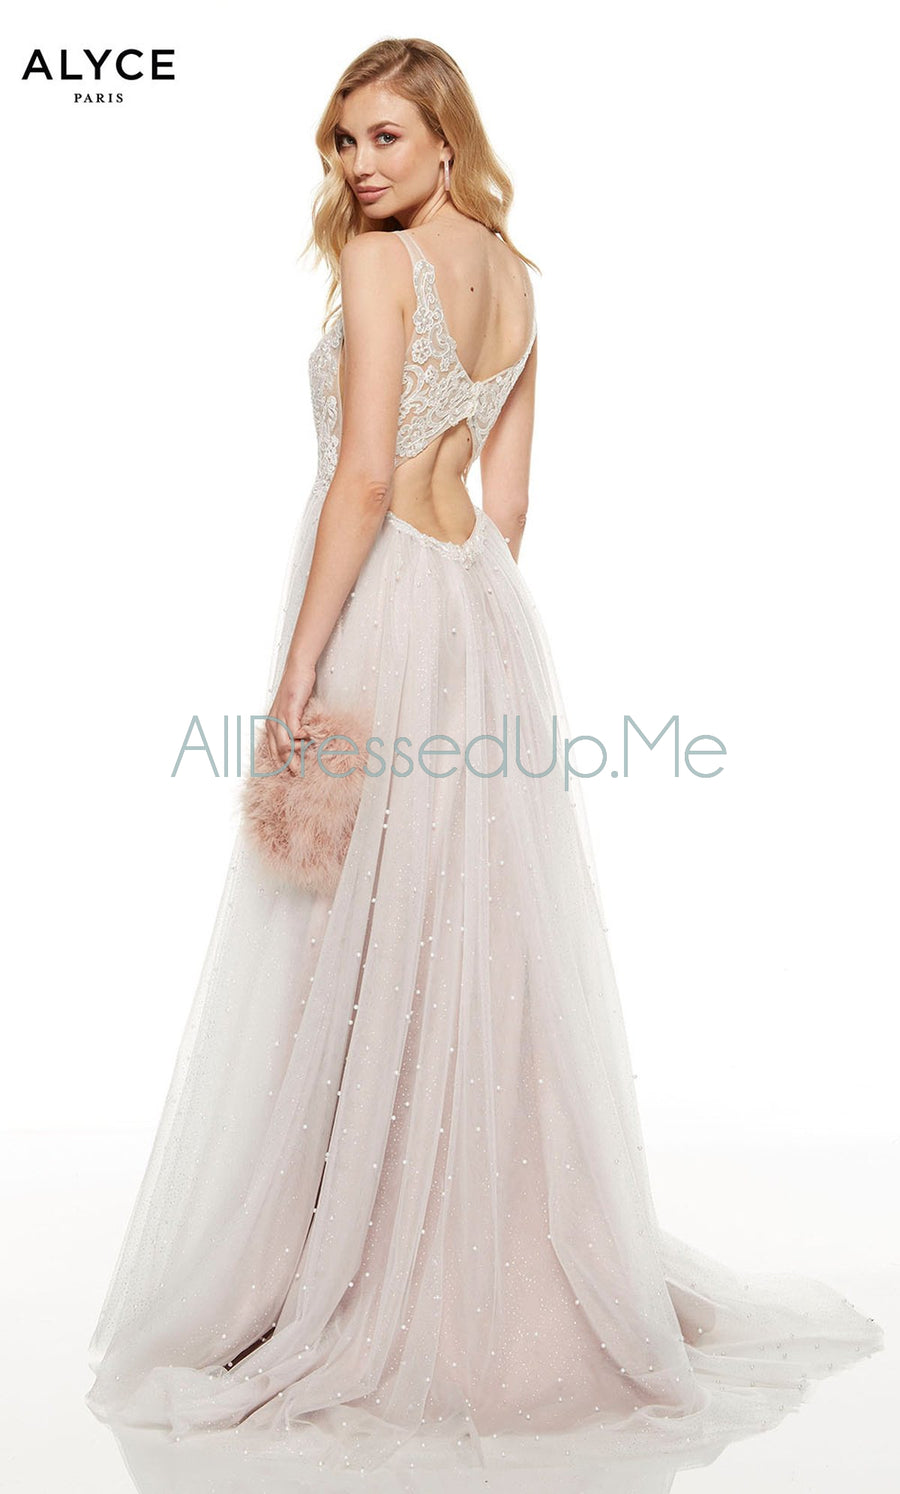 Alyce Paris - 60686 - All Dressed Up, Prom/Party Dress - - Dresses Two Piece Cut Out Sweetheart Halter Low Back High Neck Print Beaded Chiffon Jersey Fitted Sexy Satin Lace Jeweled Sparkle Shimmer Sleeveless Stunning Gorgeous Modest See Through Transparent Glitter Special Occasions Event Chattanooga Hixson Shops Boutiques Tennessee TN Georgia GA MSRP Lowest Prices Sale Discount